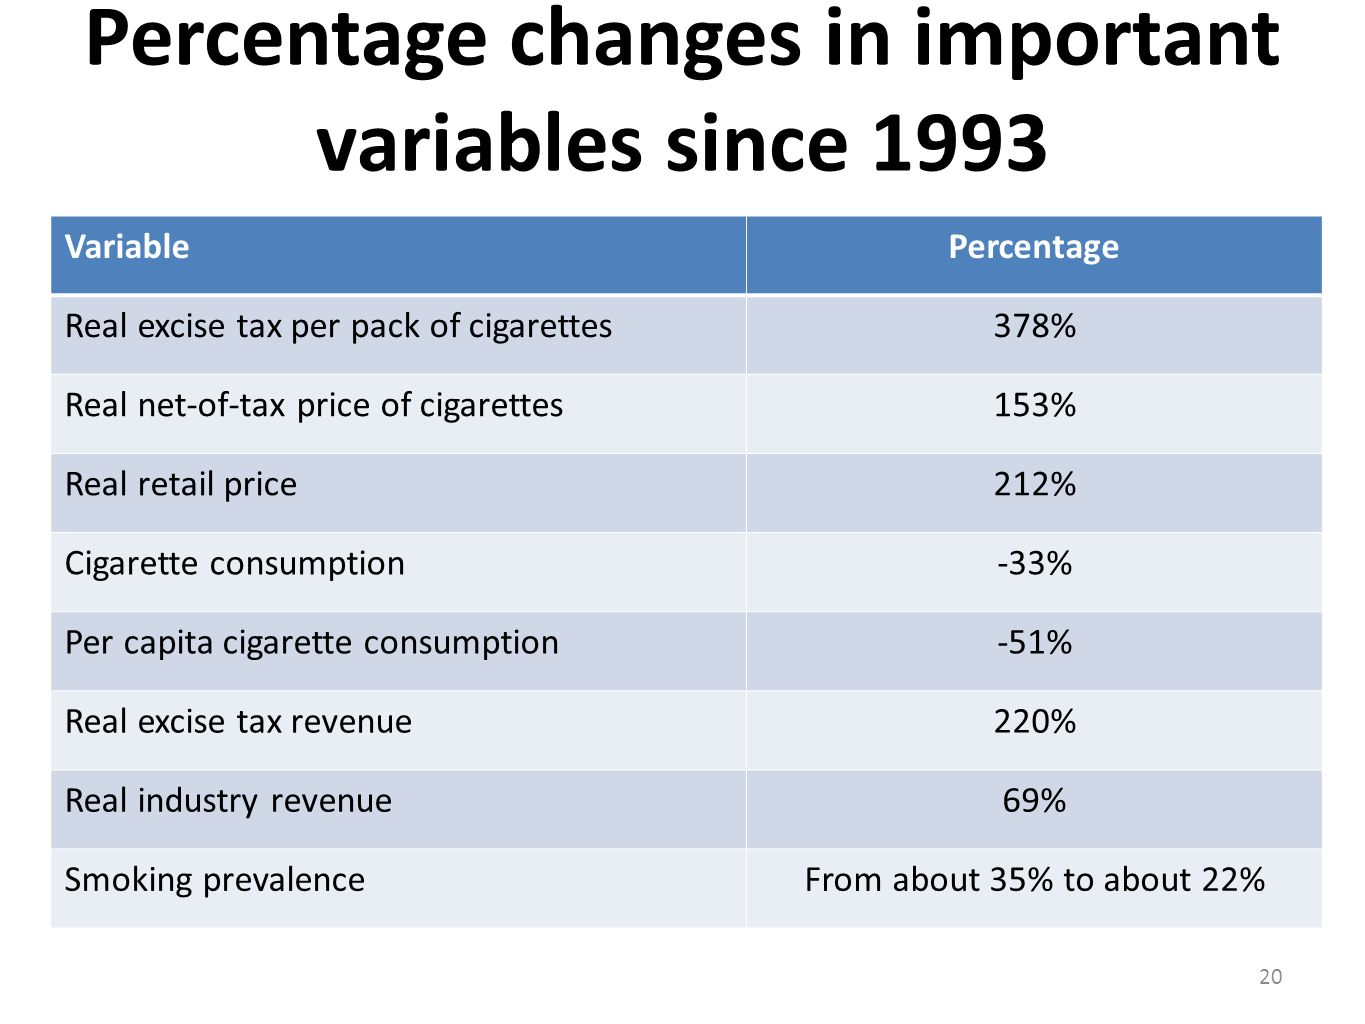 Percentage changes in important variables since 1993 VariablePercentage Real excise tax per pack of cigarettes378% Real net-of-tax price of cigarettes153% Real retail price212% Cigarette consumption-33% Per capita cigarette consumption-51% Real excise tax revenue220% Real industry revenue69% Smoking prevalenceFrom about 35% to about 22% 20